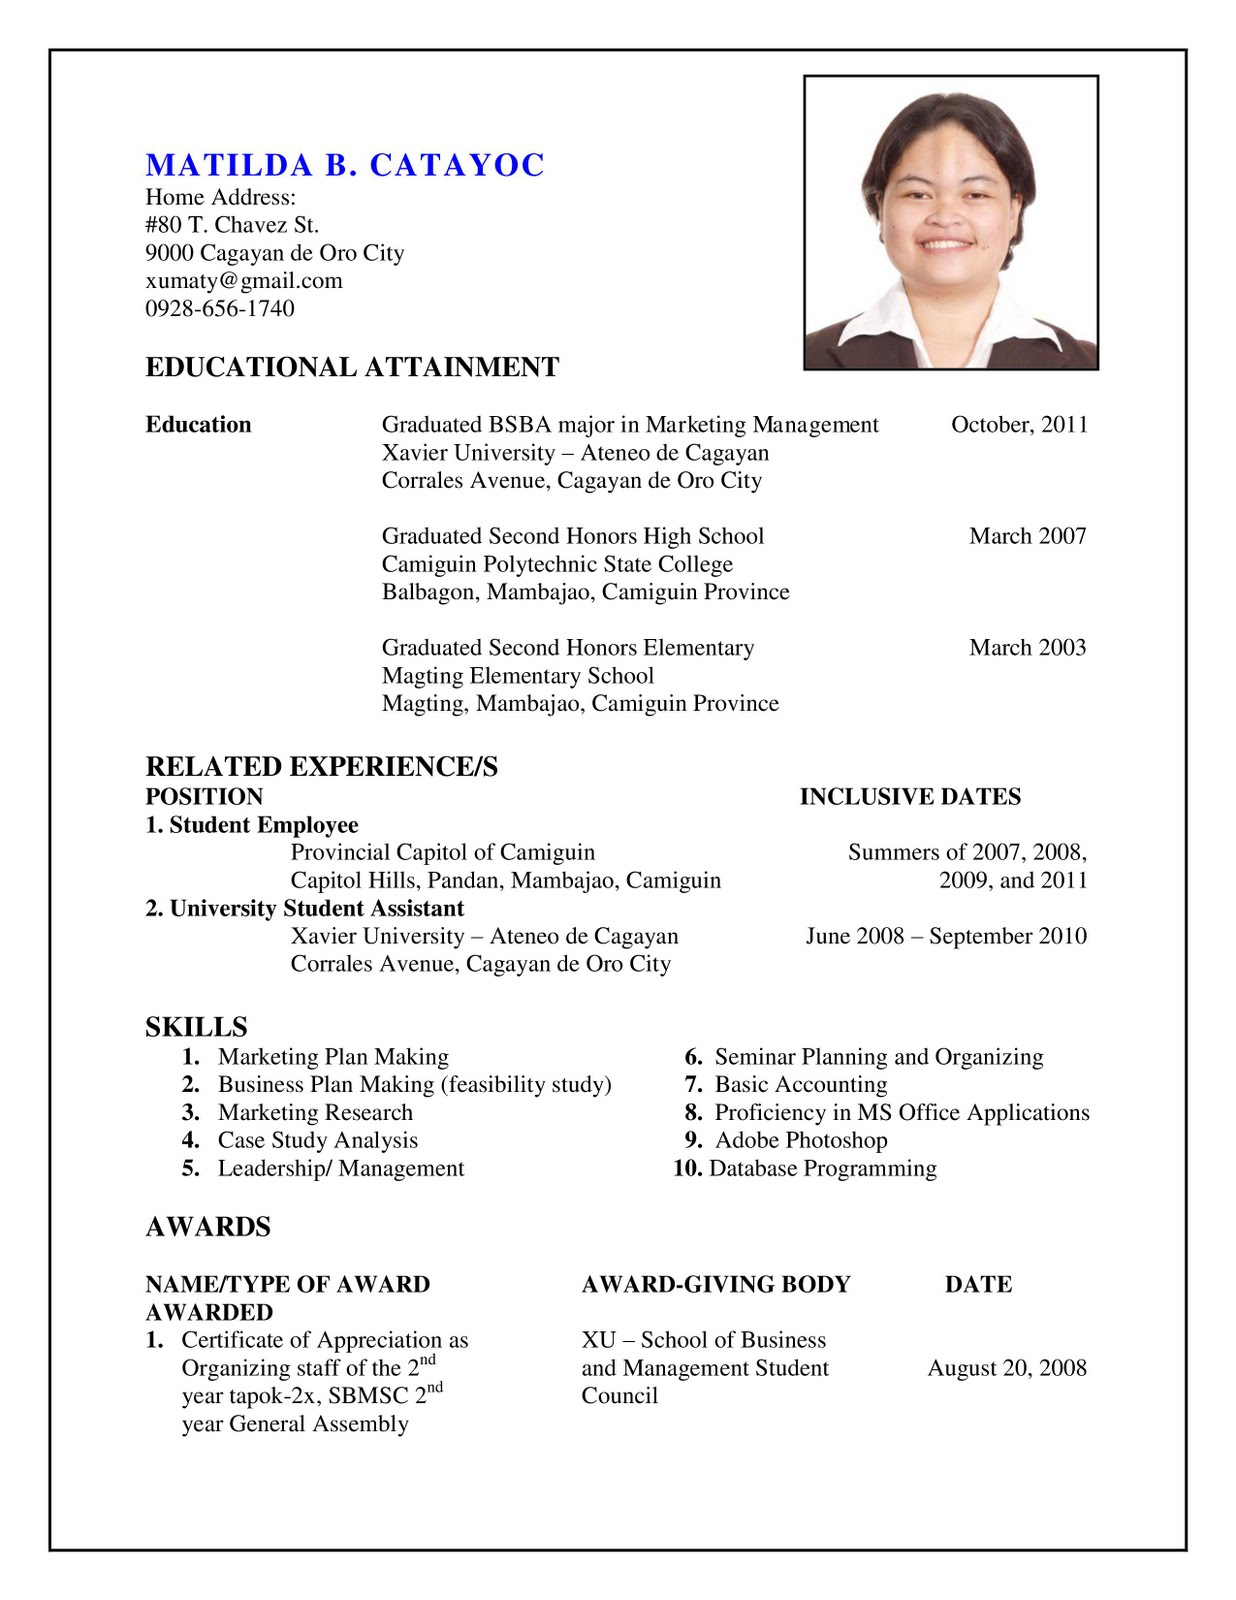 how to make a good resume teenager resume builder how to make a good resume teenager how to write a resume for a teenager